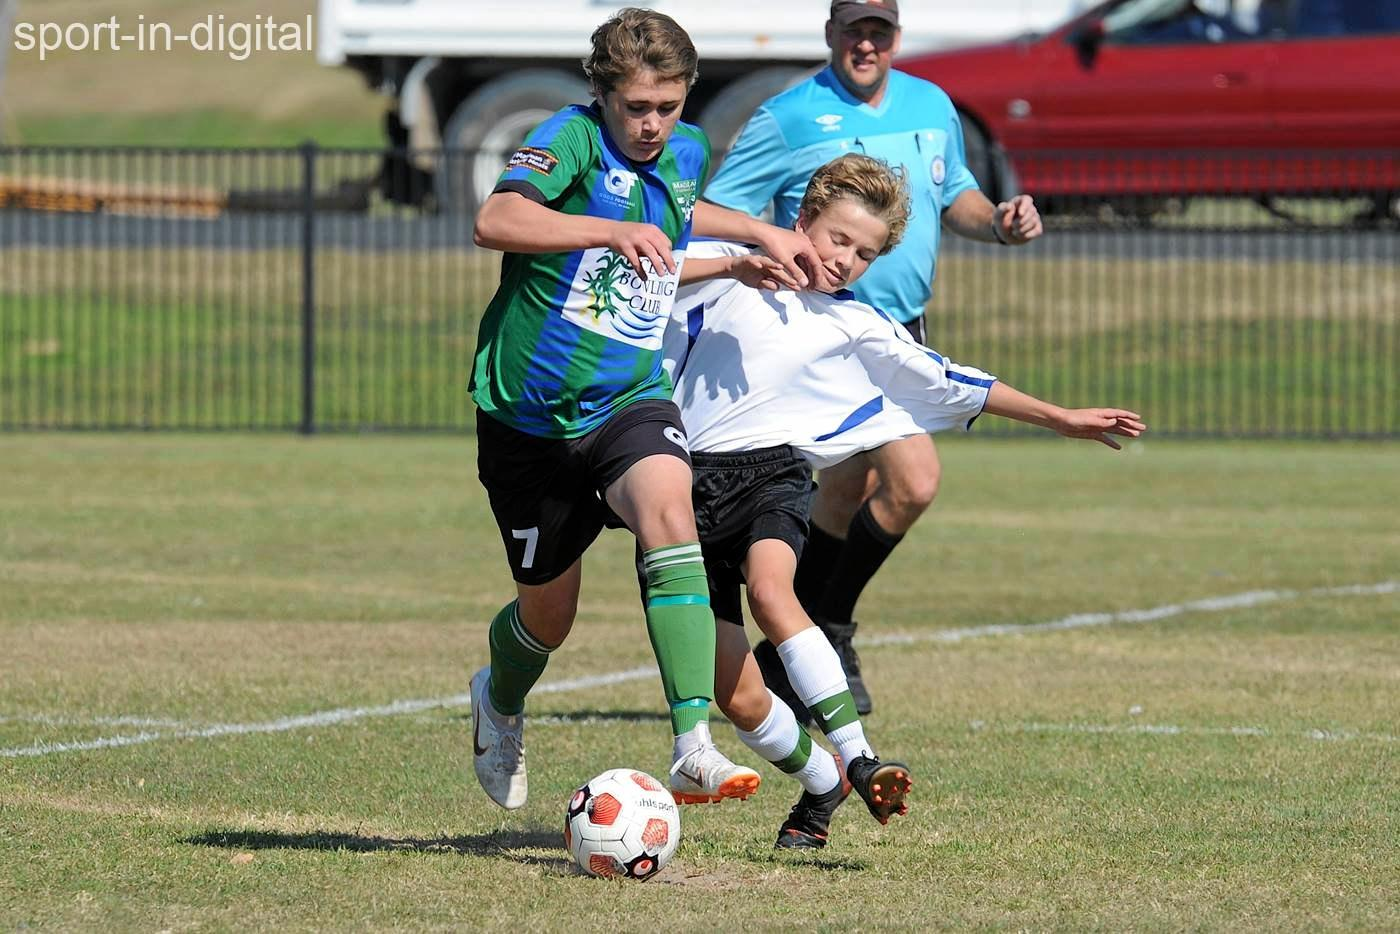 The Bobcats and Tigers fight for the ball during their 1-1 NCF Premier League draw.